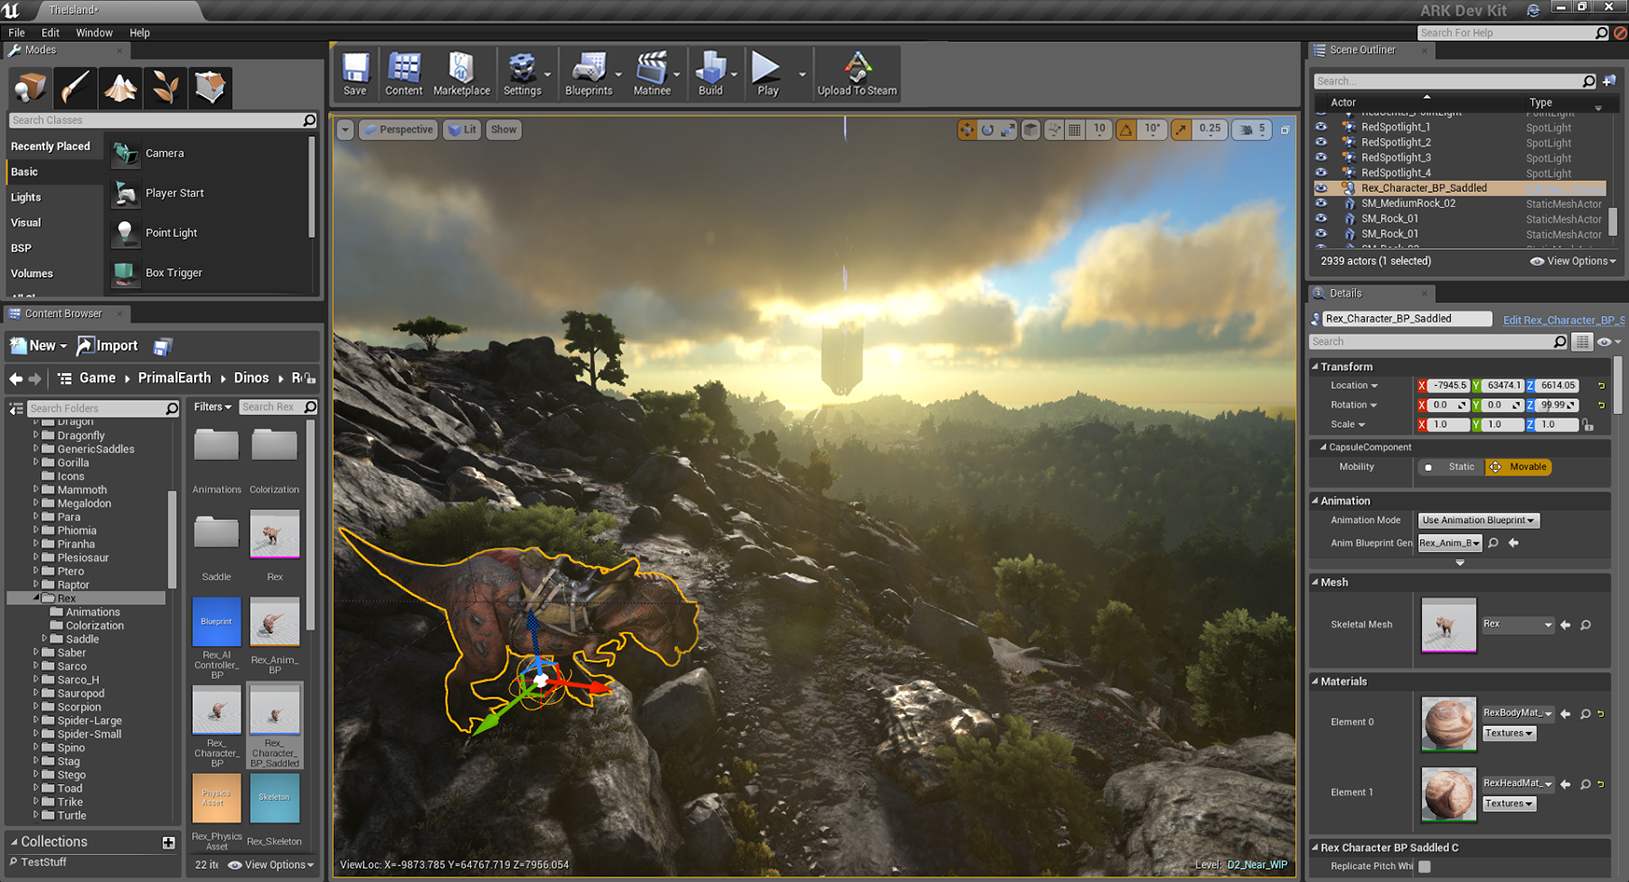 Ark survival evolved ark survival evolved dev kit update ark survival evolved dev kit update malvernweather Choice Image